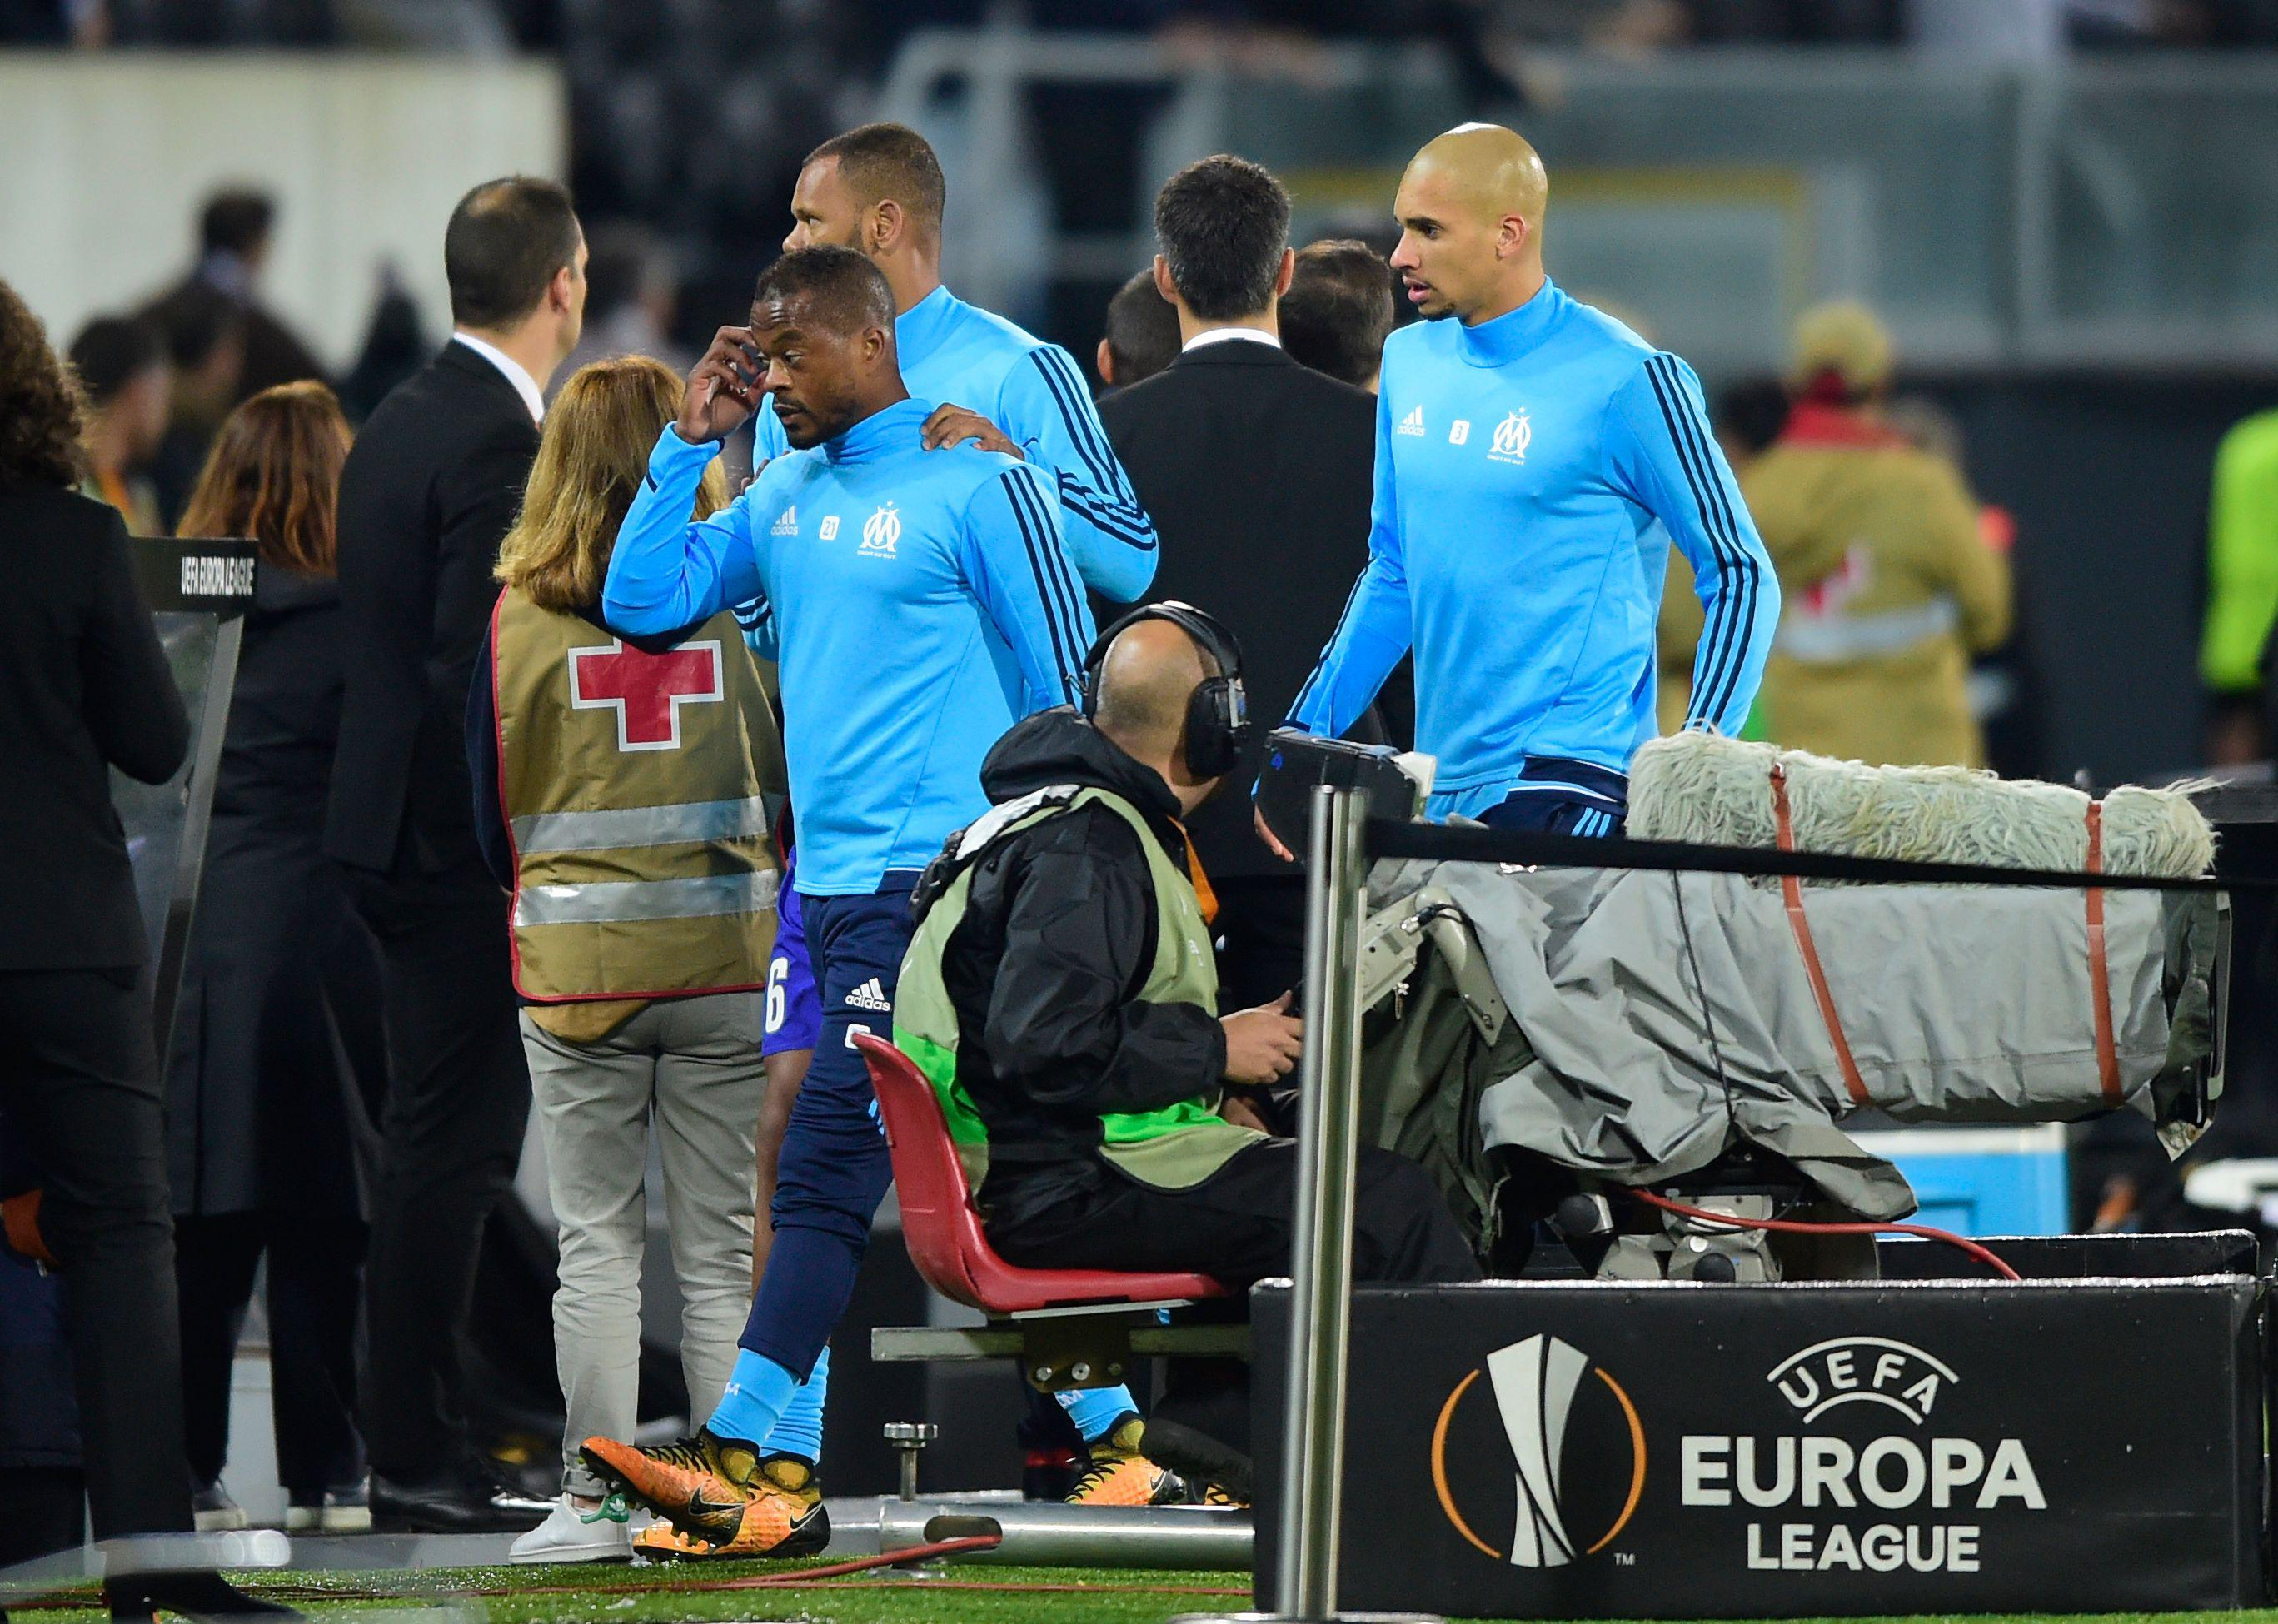 Evra was given his marching orders